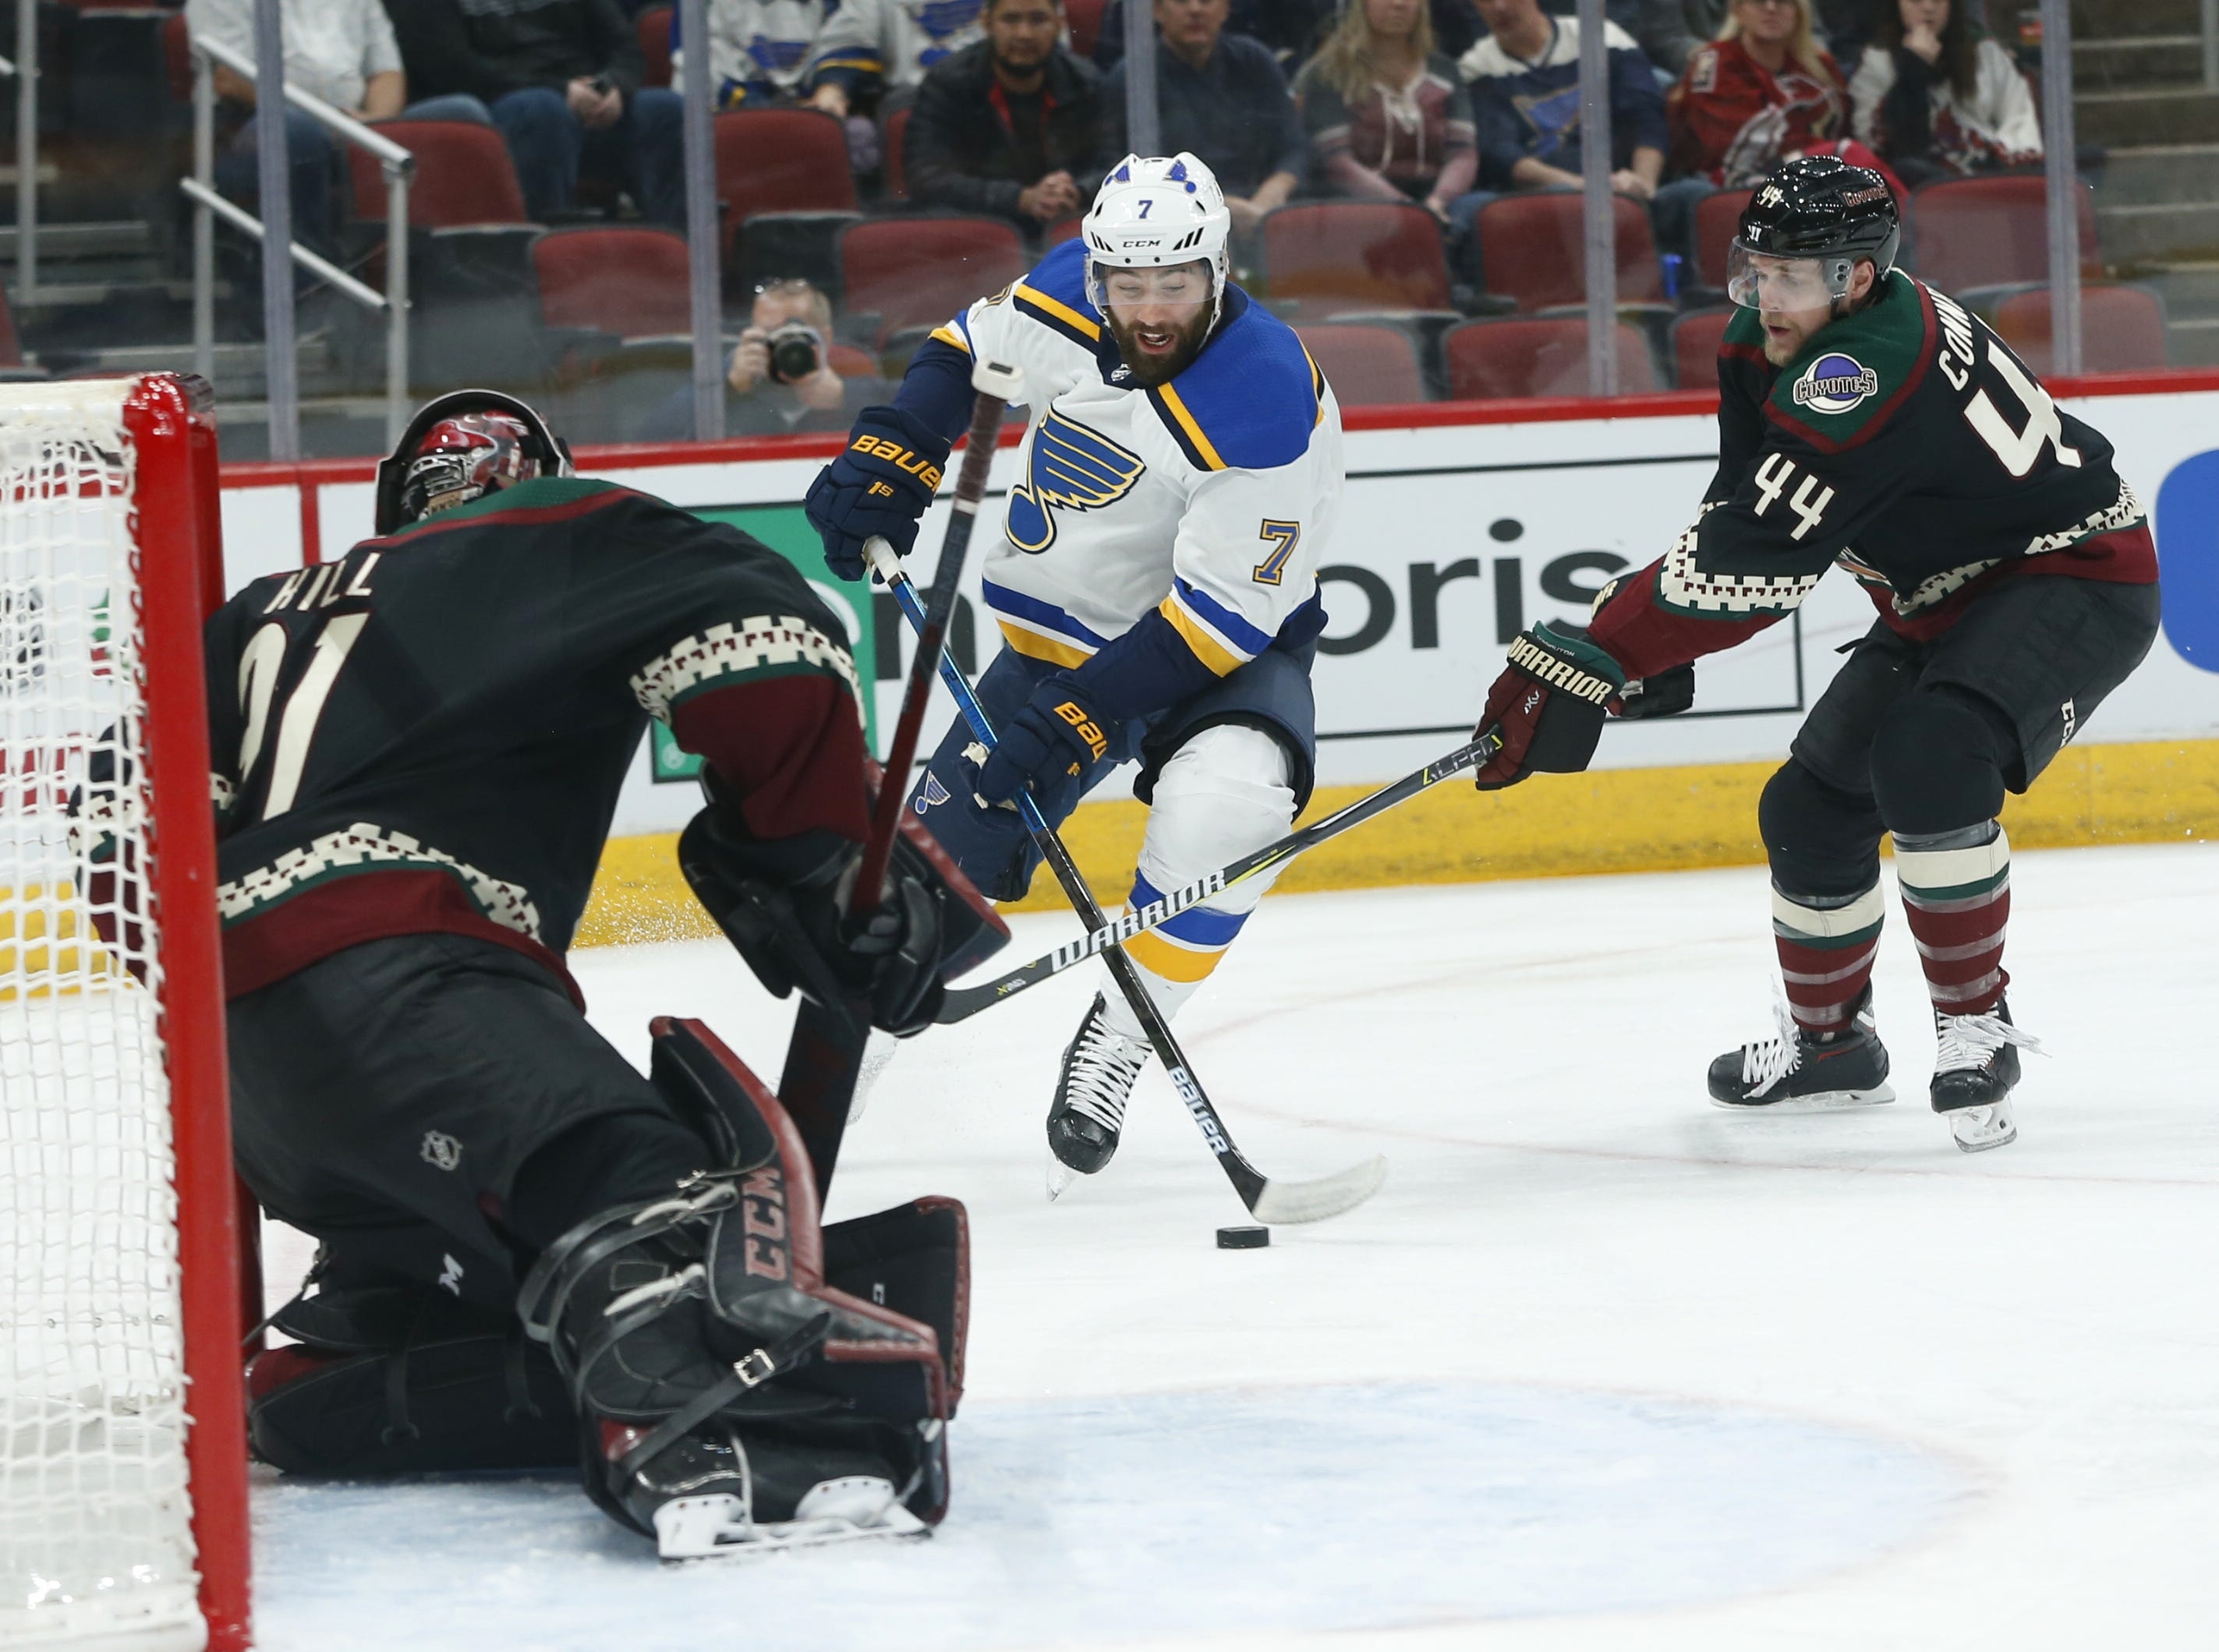 Blues' Pat Maroon (7) shoots against Coyotes' goalie Adin Hill (31) during the first period at Gila River Arena in Glendale, Ariz. on December 1, 2018.